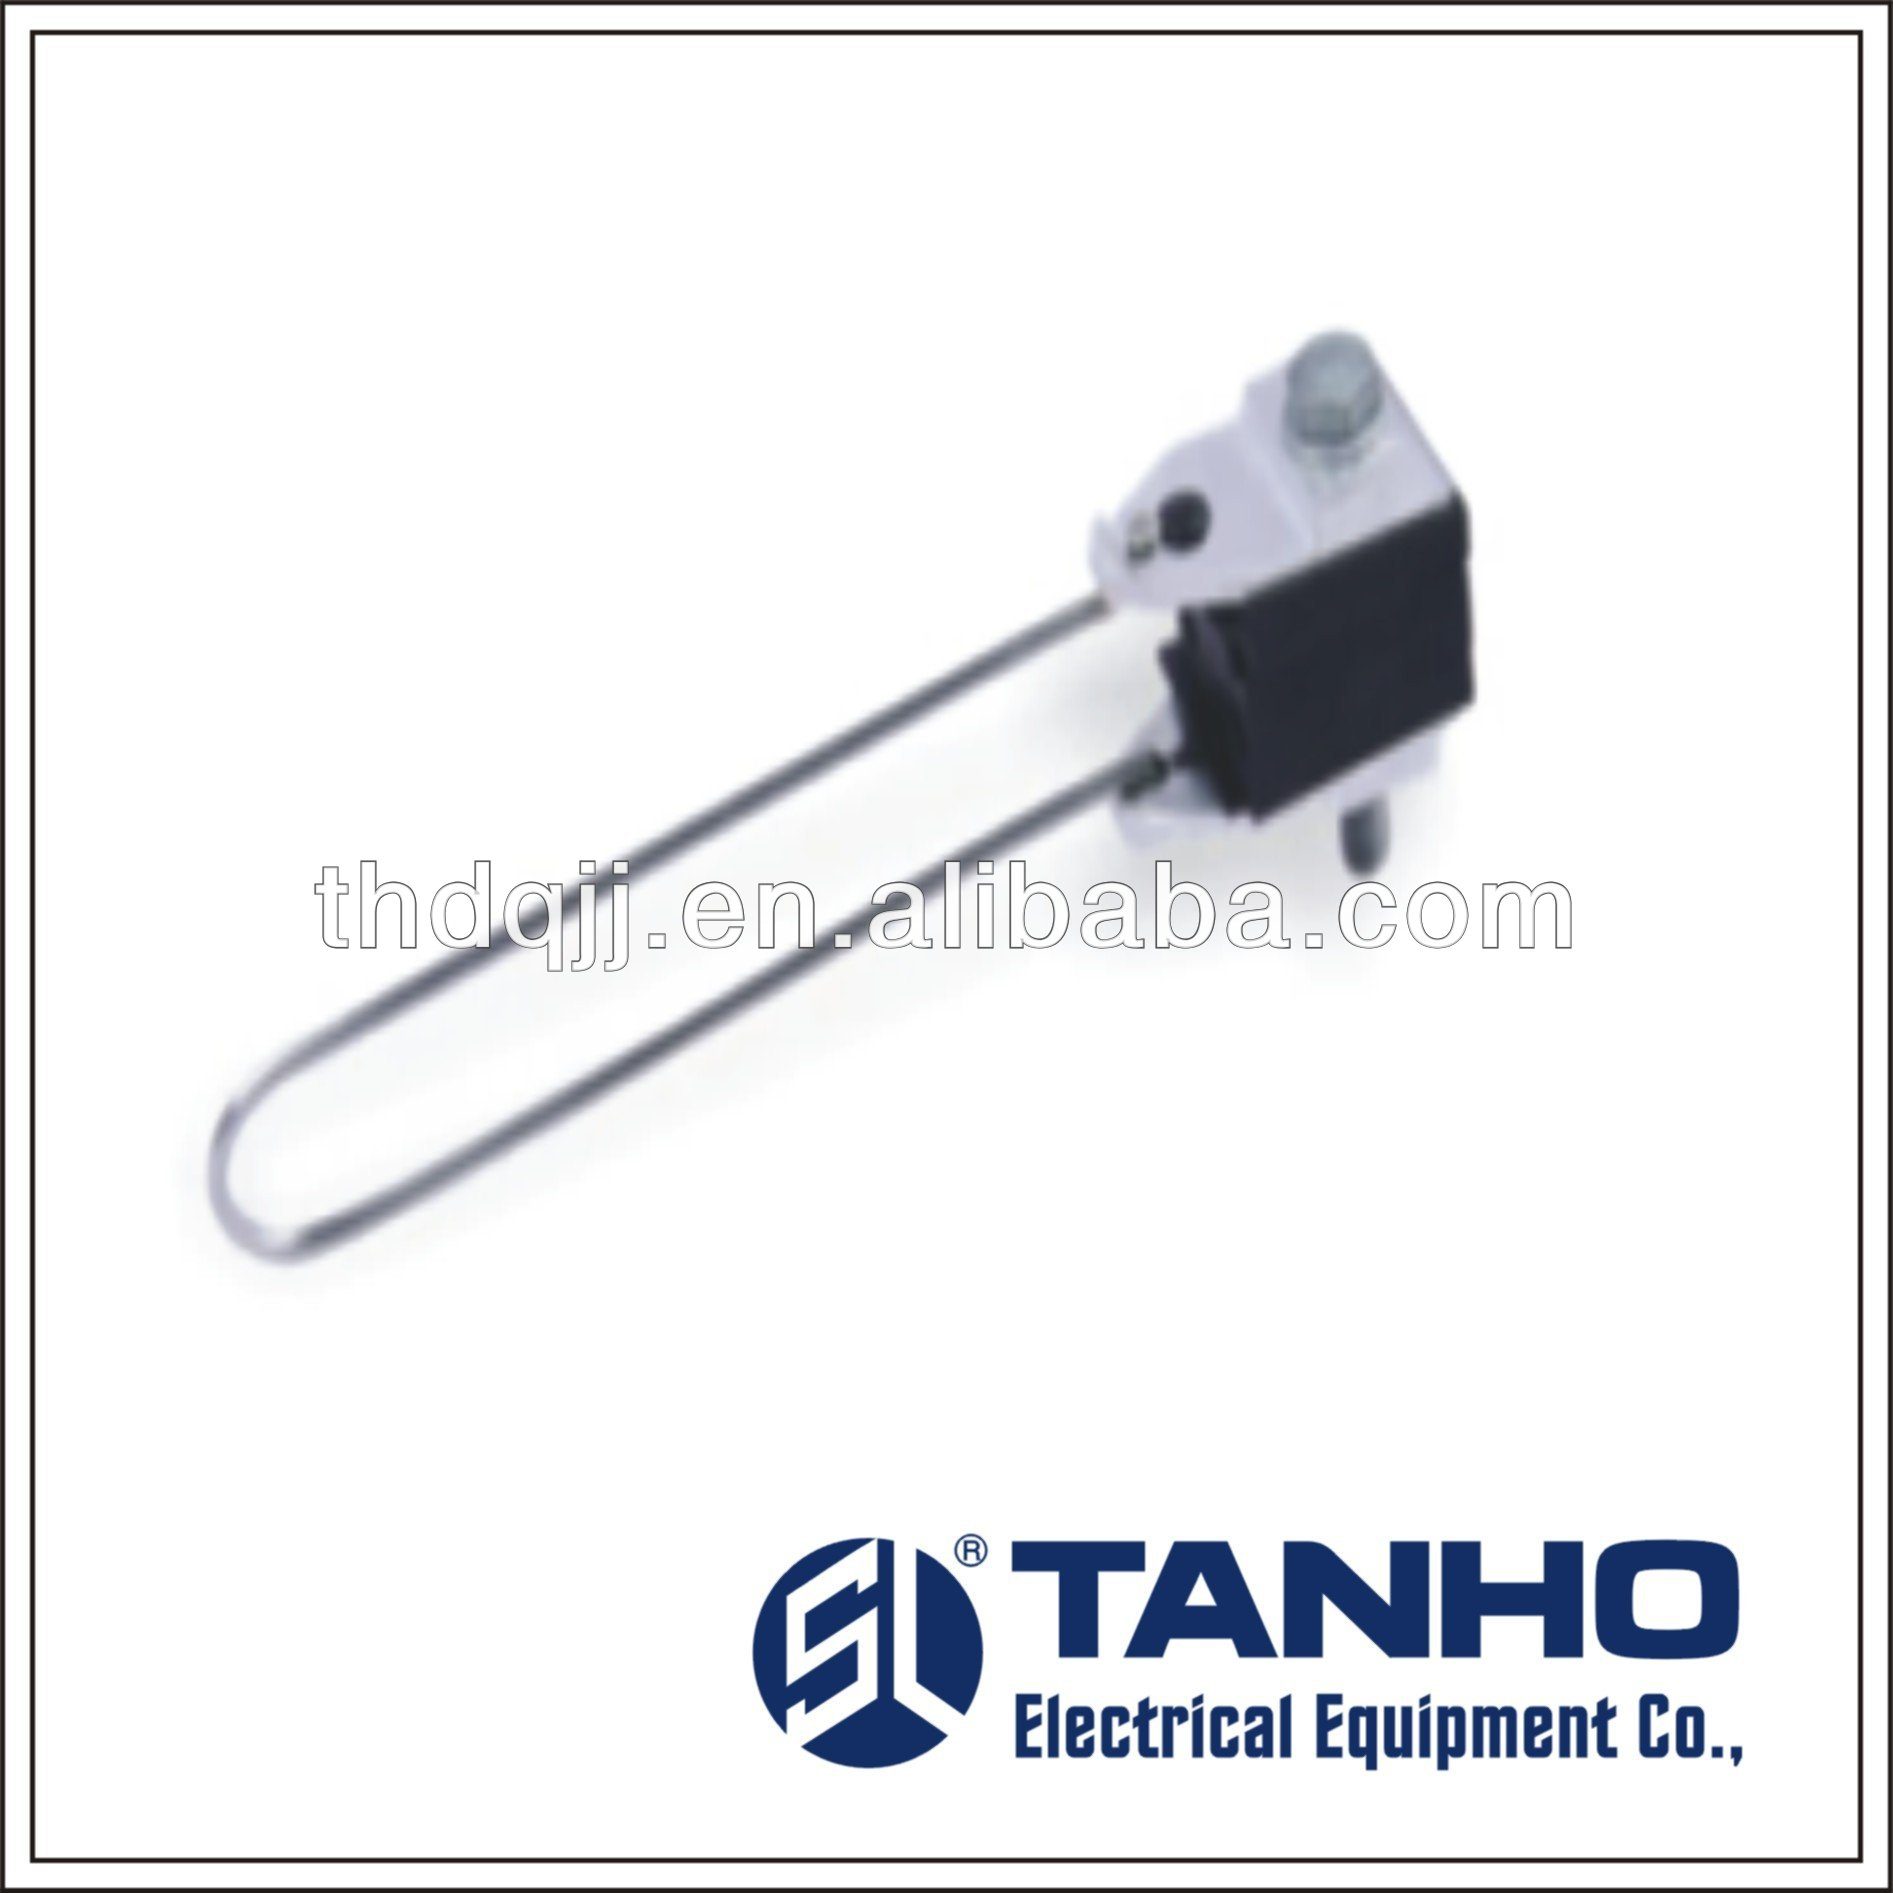 THB electrical cable wedge Anchoring Clamp